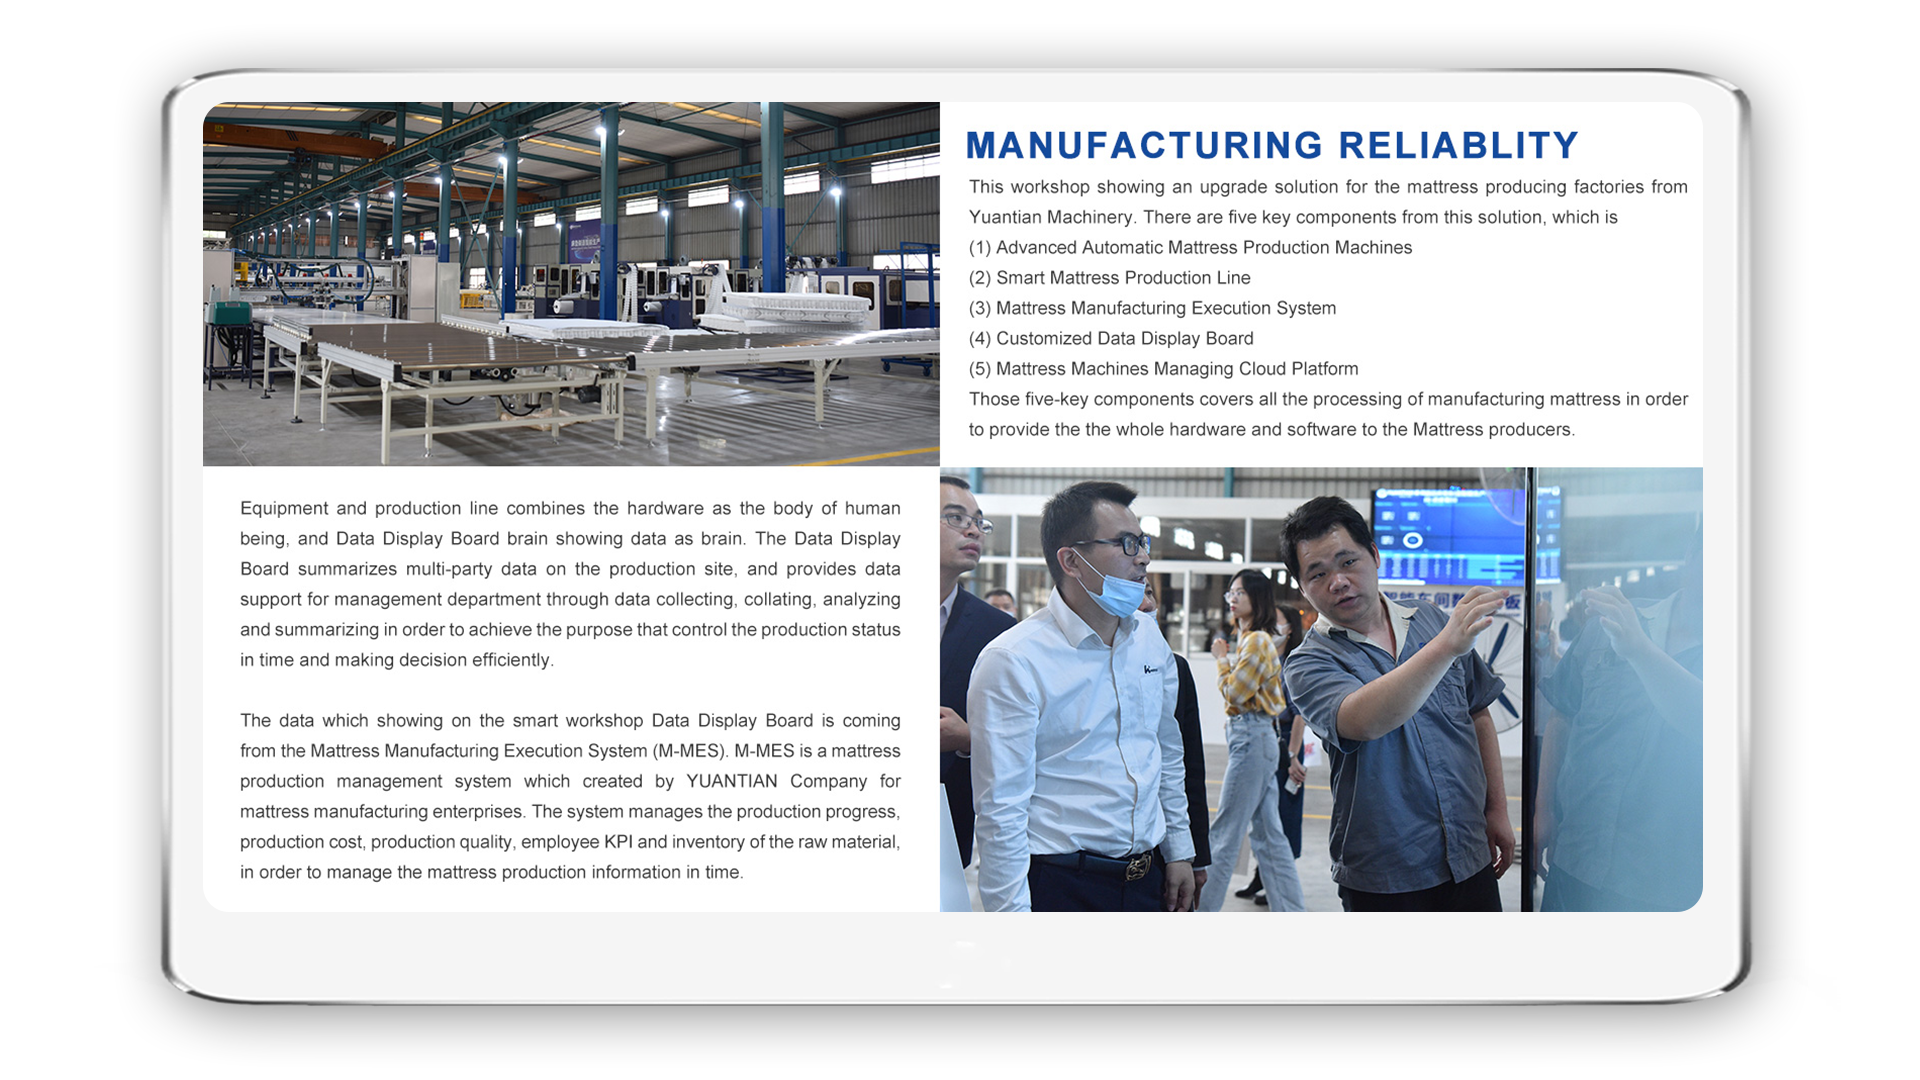 Manufacturing Reliablity